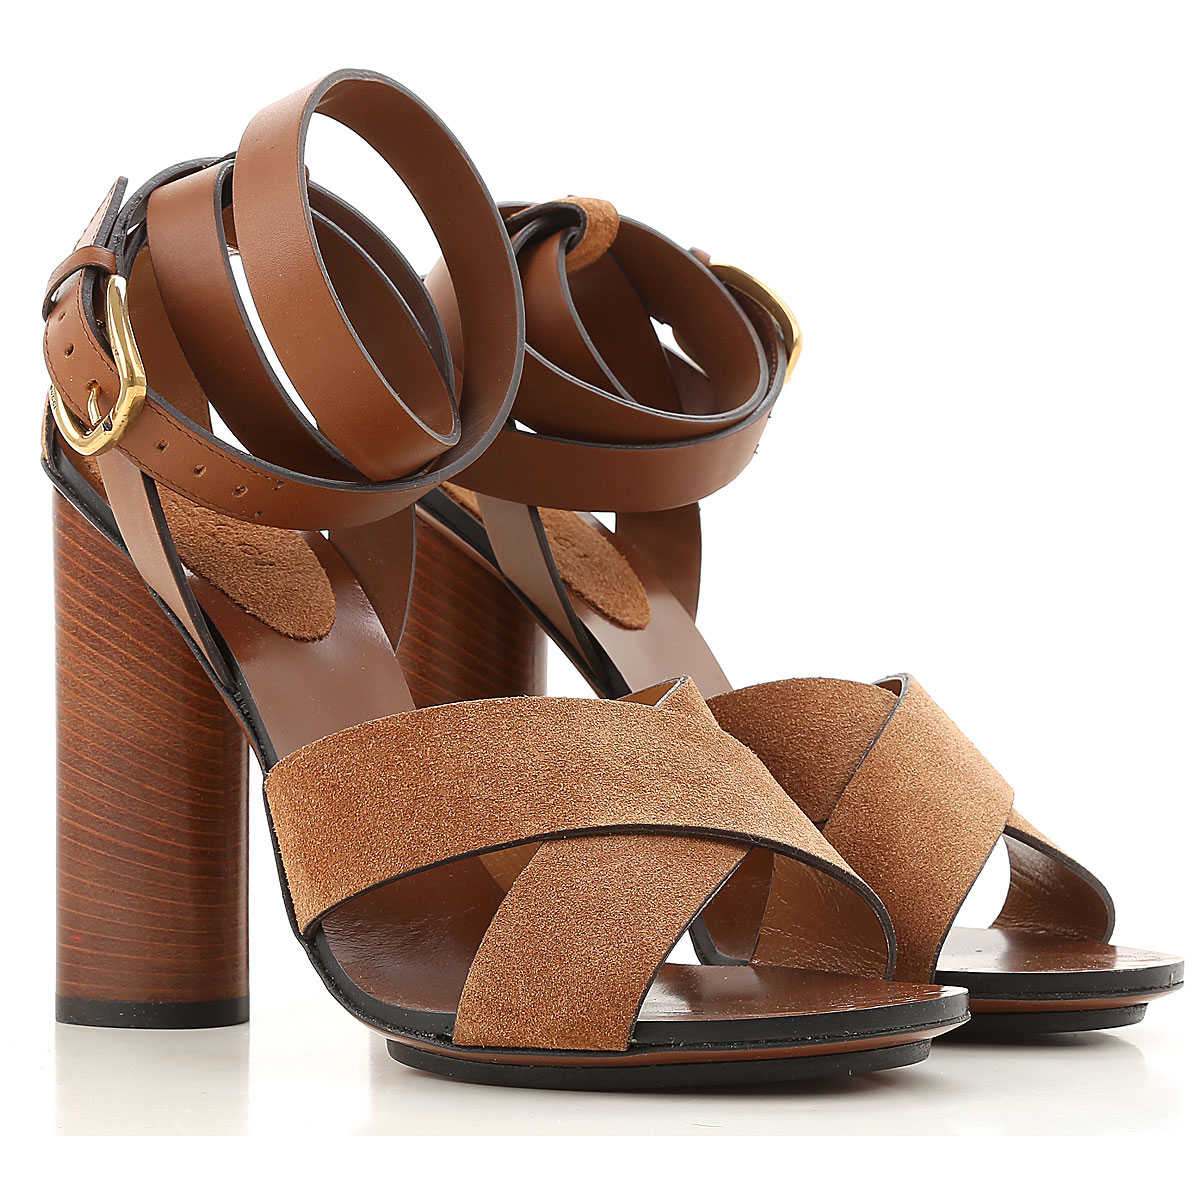 Gucci Sandals for Women On Sale in Outlet